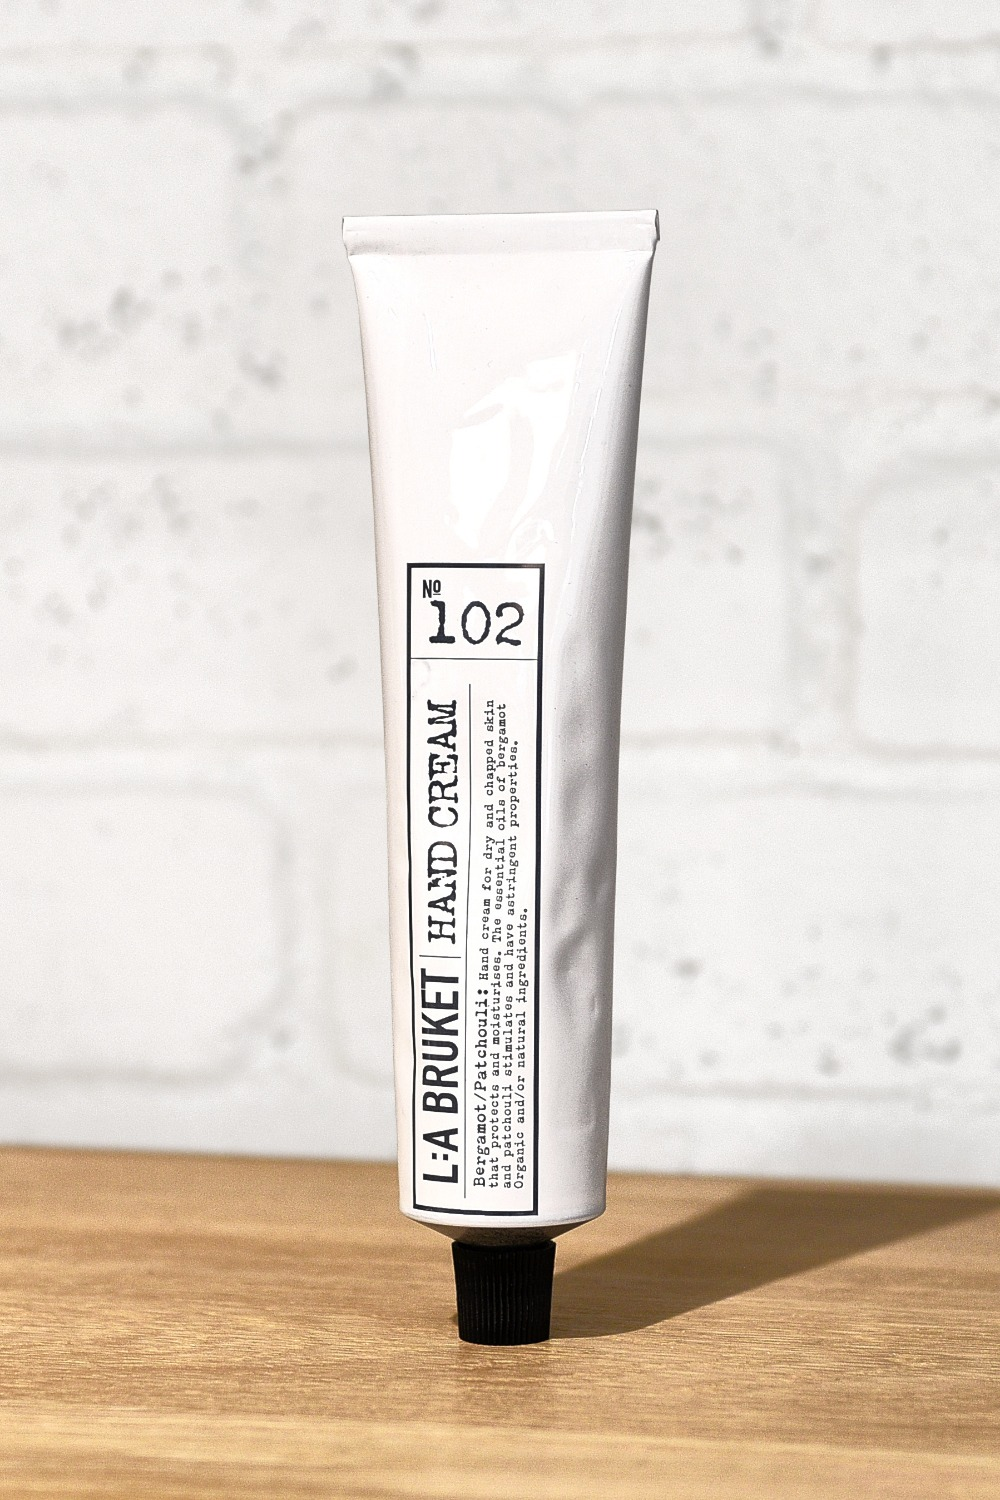 102 Hand Cream (70mg) - Bergamot/Patchouli